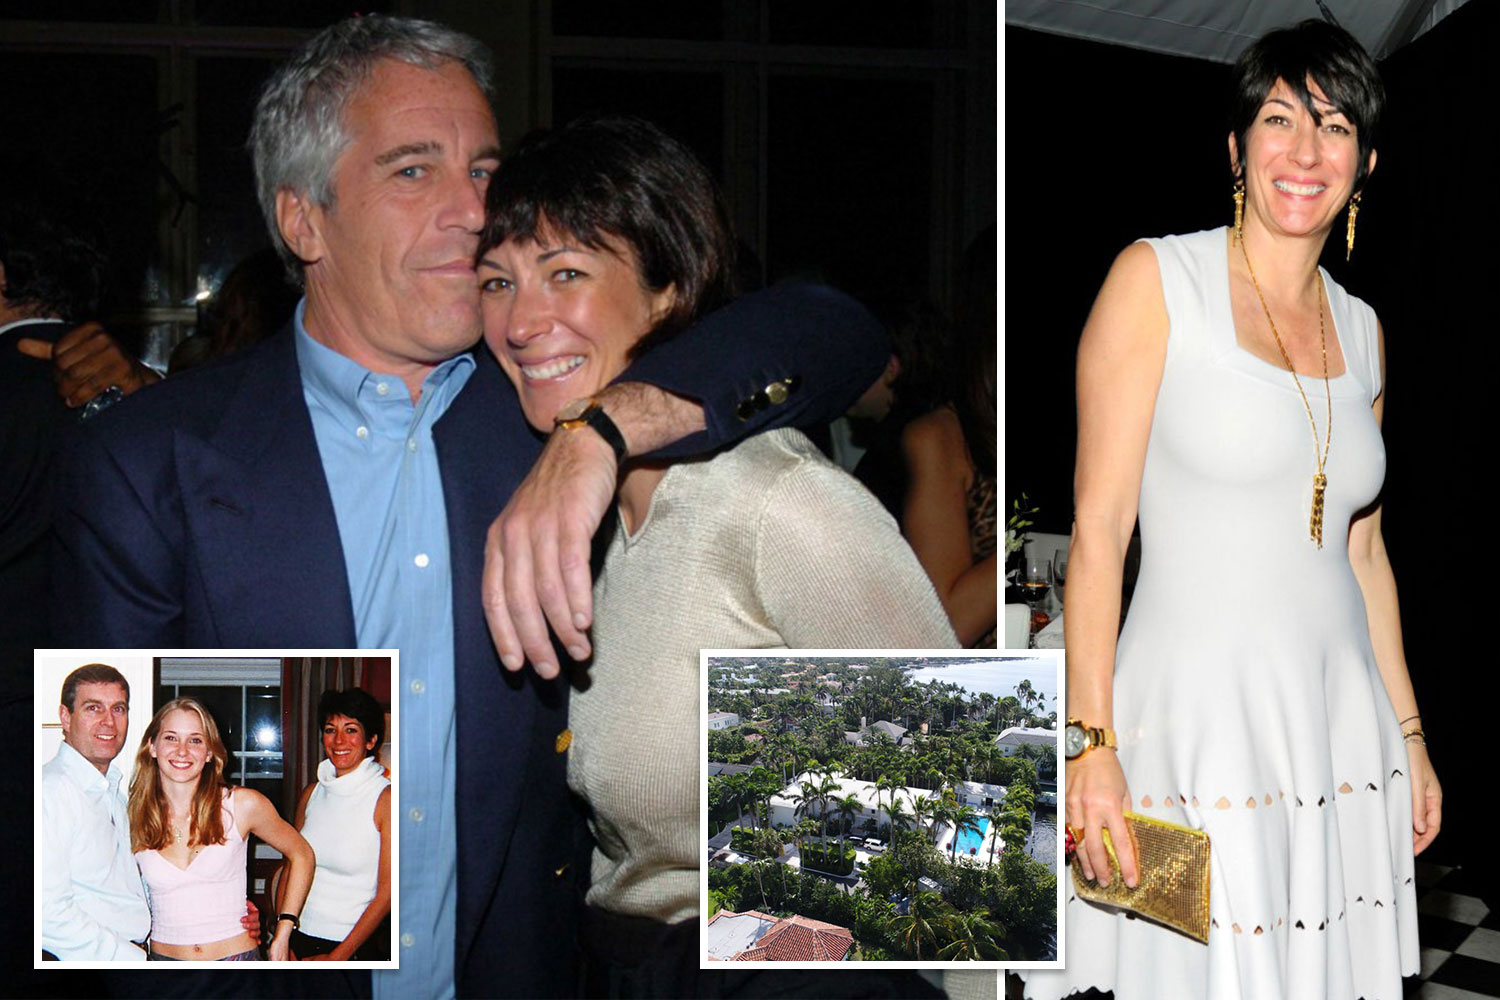 Jeffrey Epstein and Ghislaine Maxwell 'filmed powerful people having sex with underage girls' - The Sun